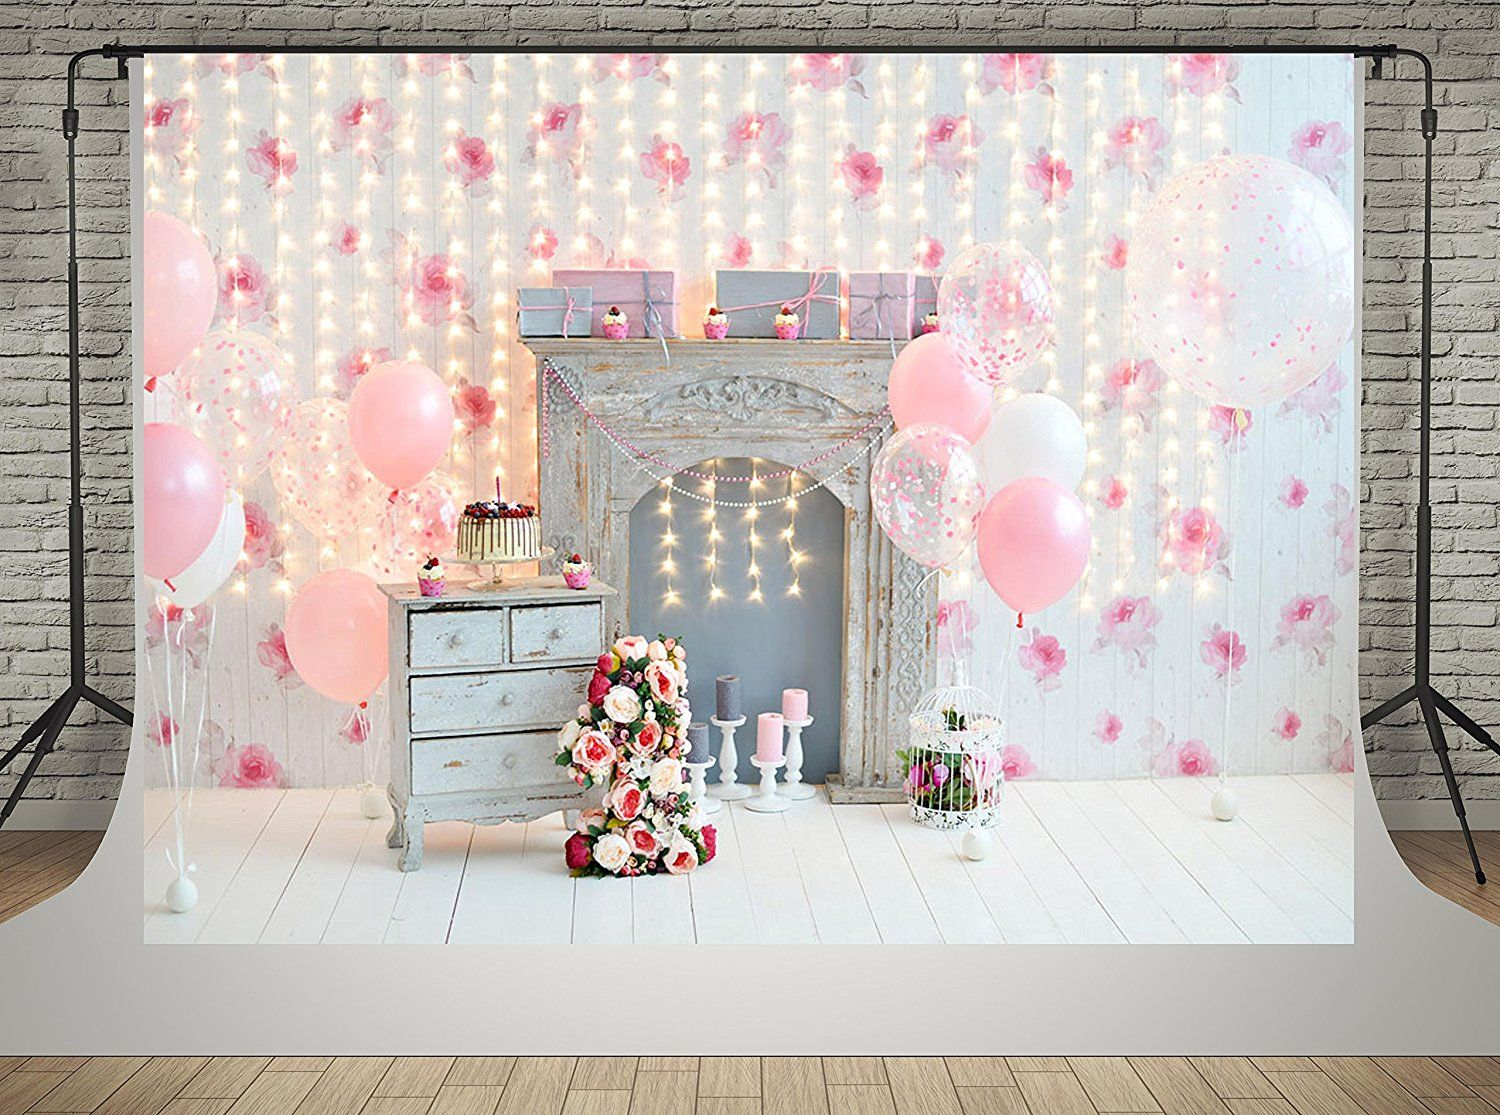 8x12 FT Birthday Vinyl Photography Backdrop,Cute Fox Sleeping on Dotted Backdrop with Greeting Happy Message Background for Party Home Decor Outdoorsy Theme Shoot Props